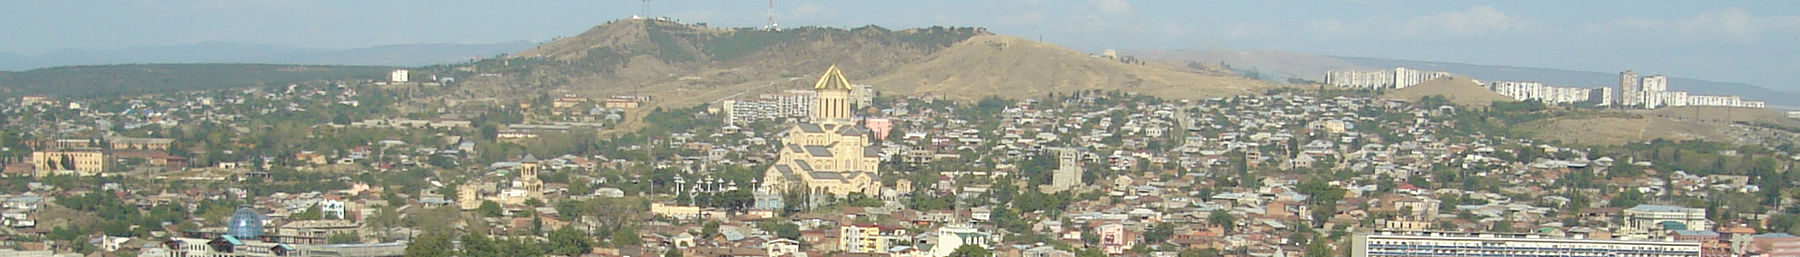 Tbilisi banner Panorama of city.jpg